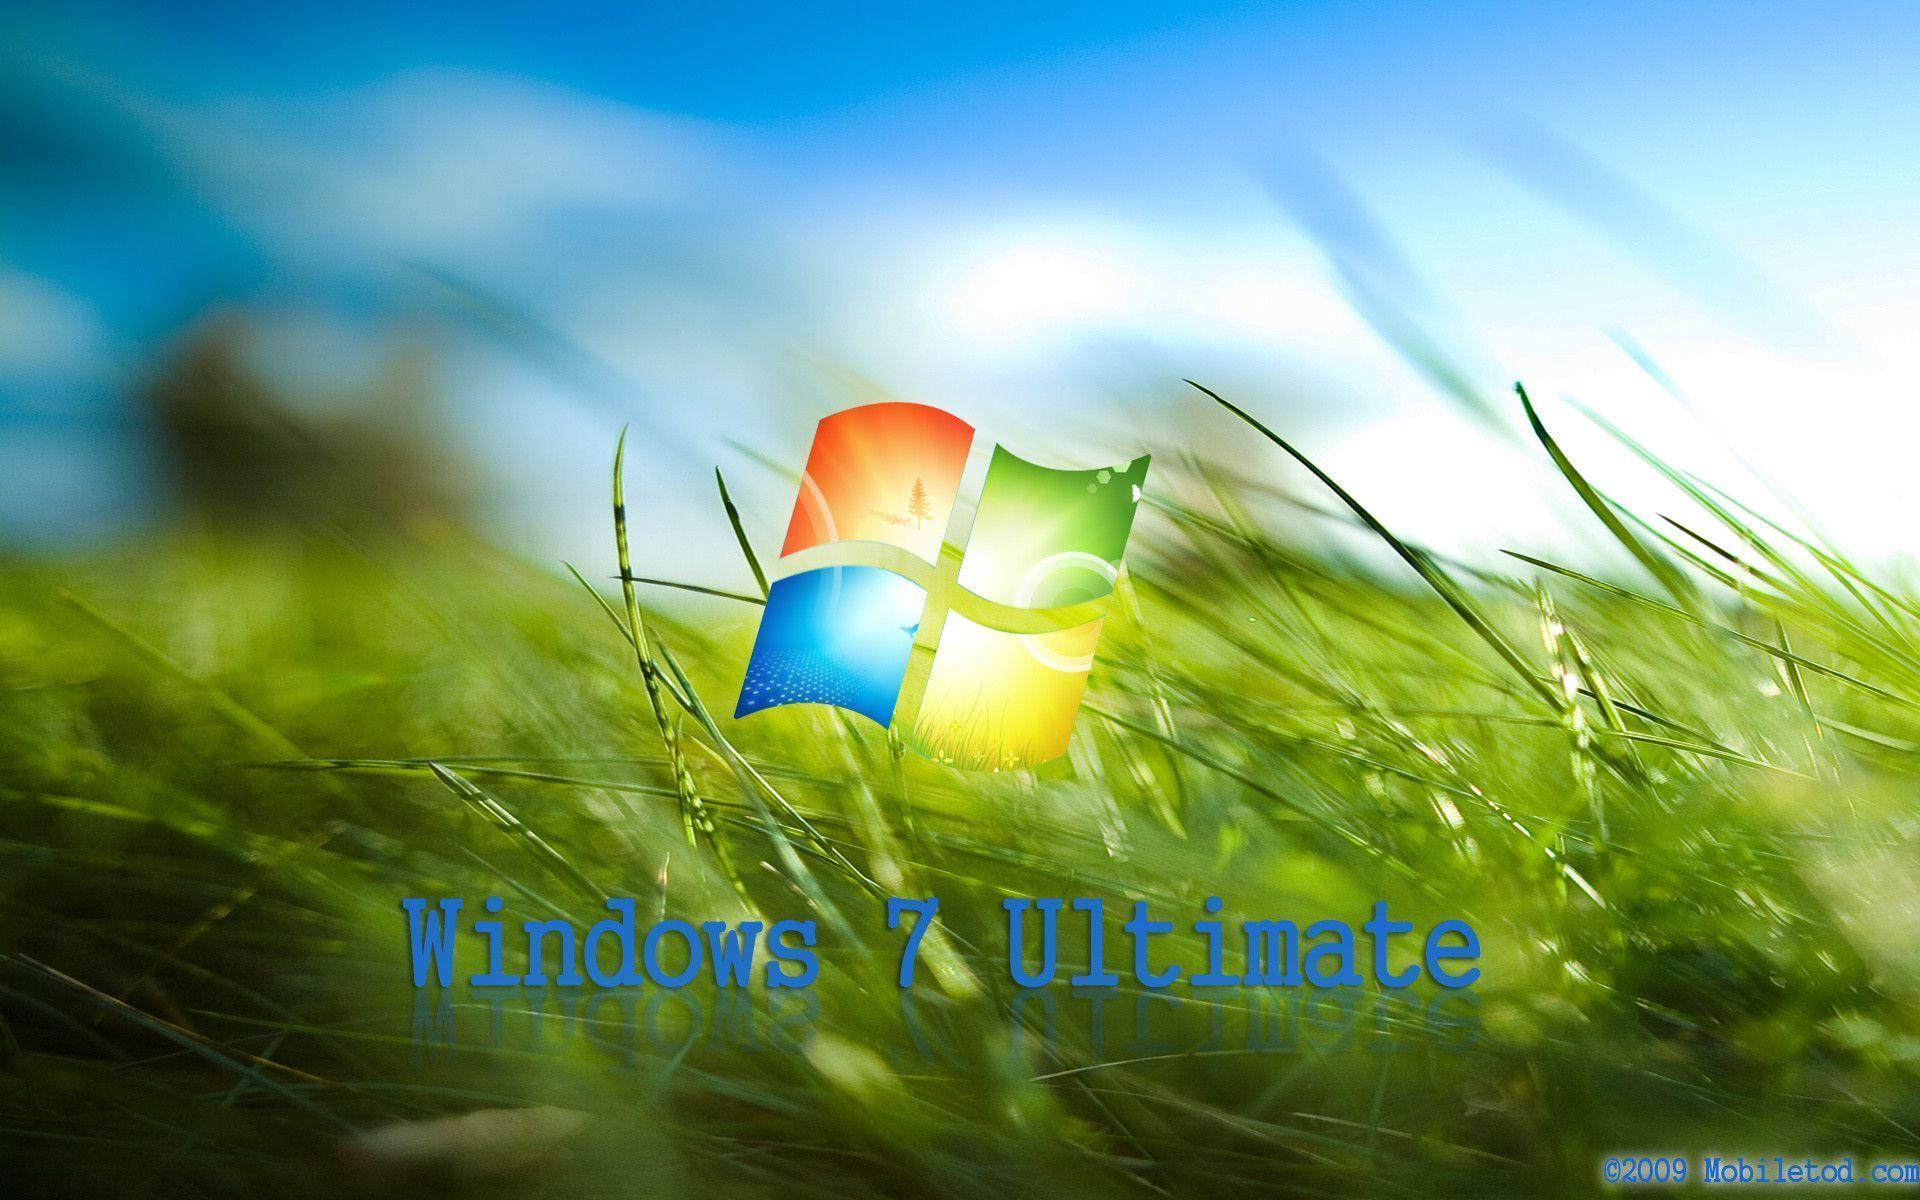 windows 7 ultimate wallpapers wallpaper cave